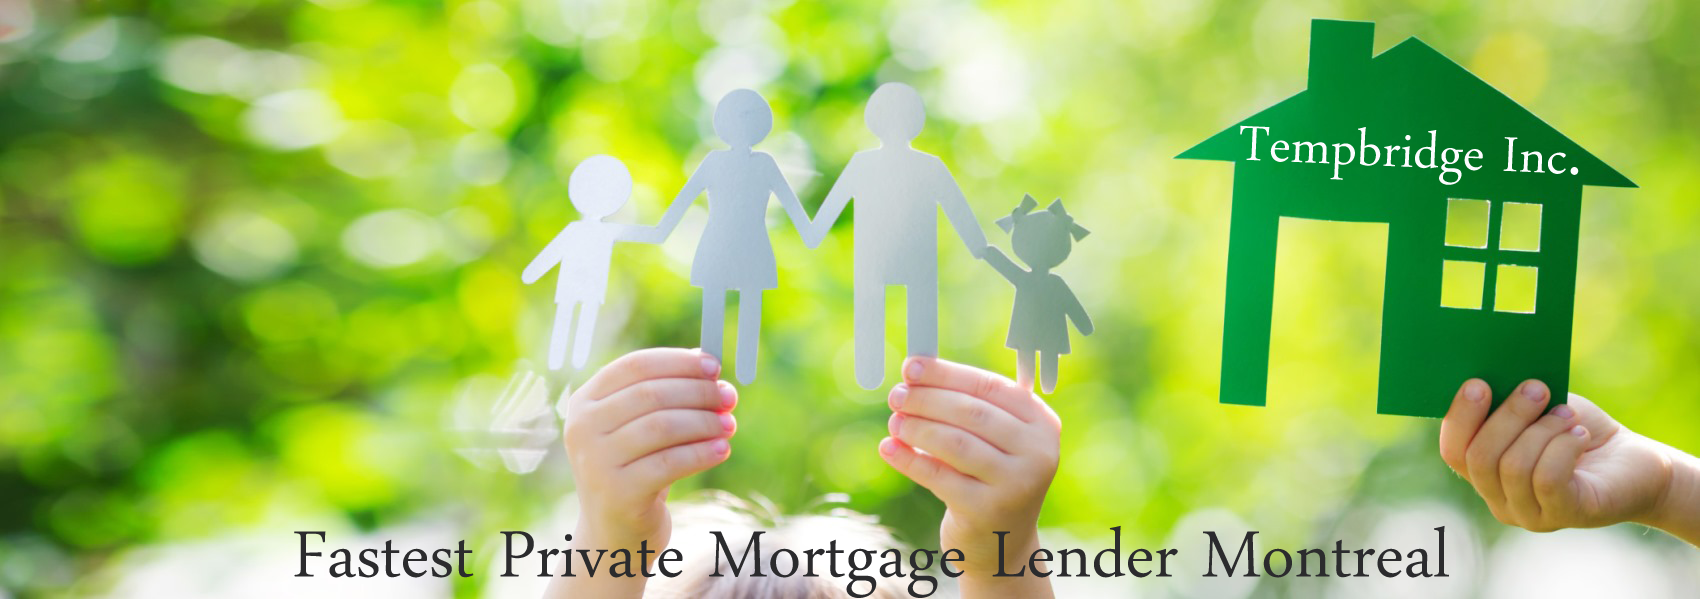 Fastest Private Mortgage Lender Montreal